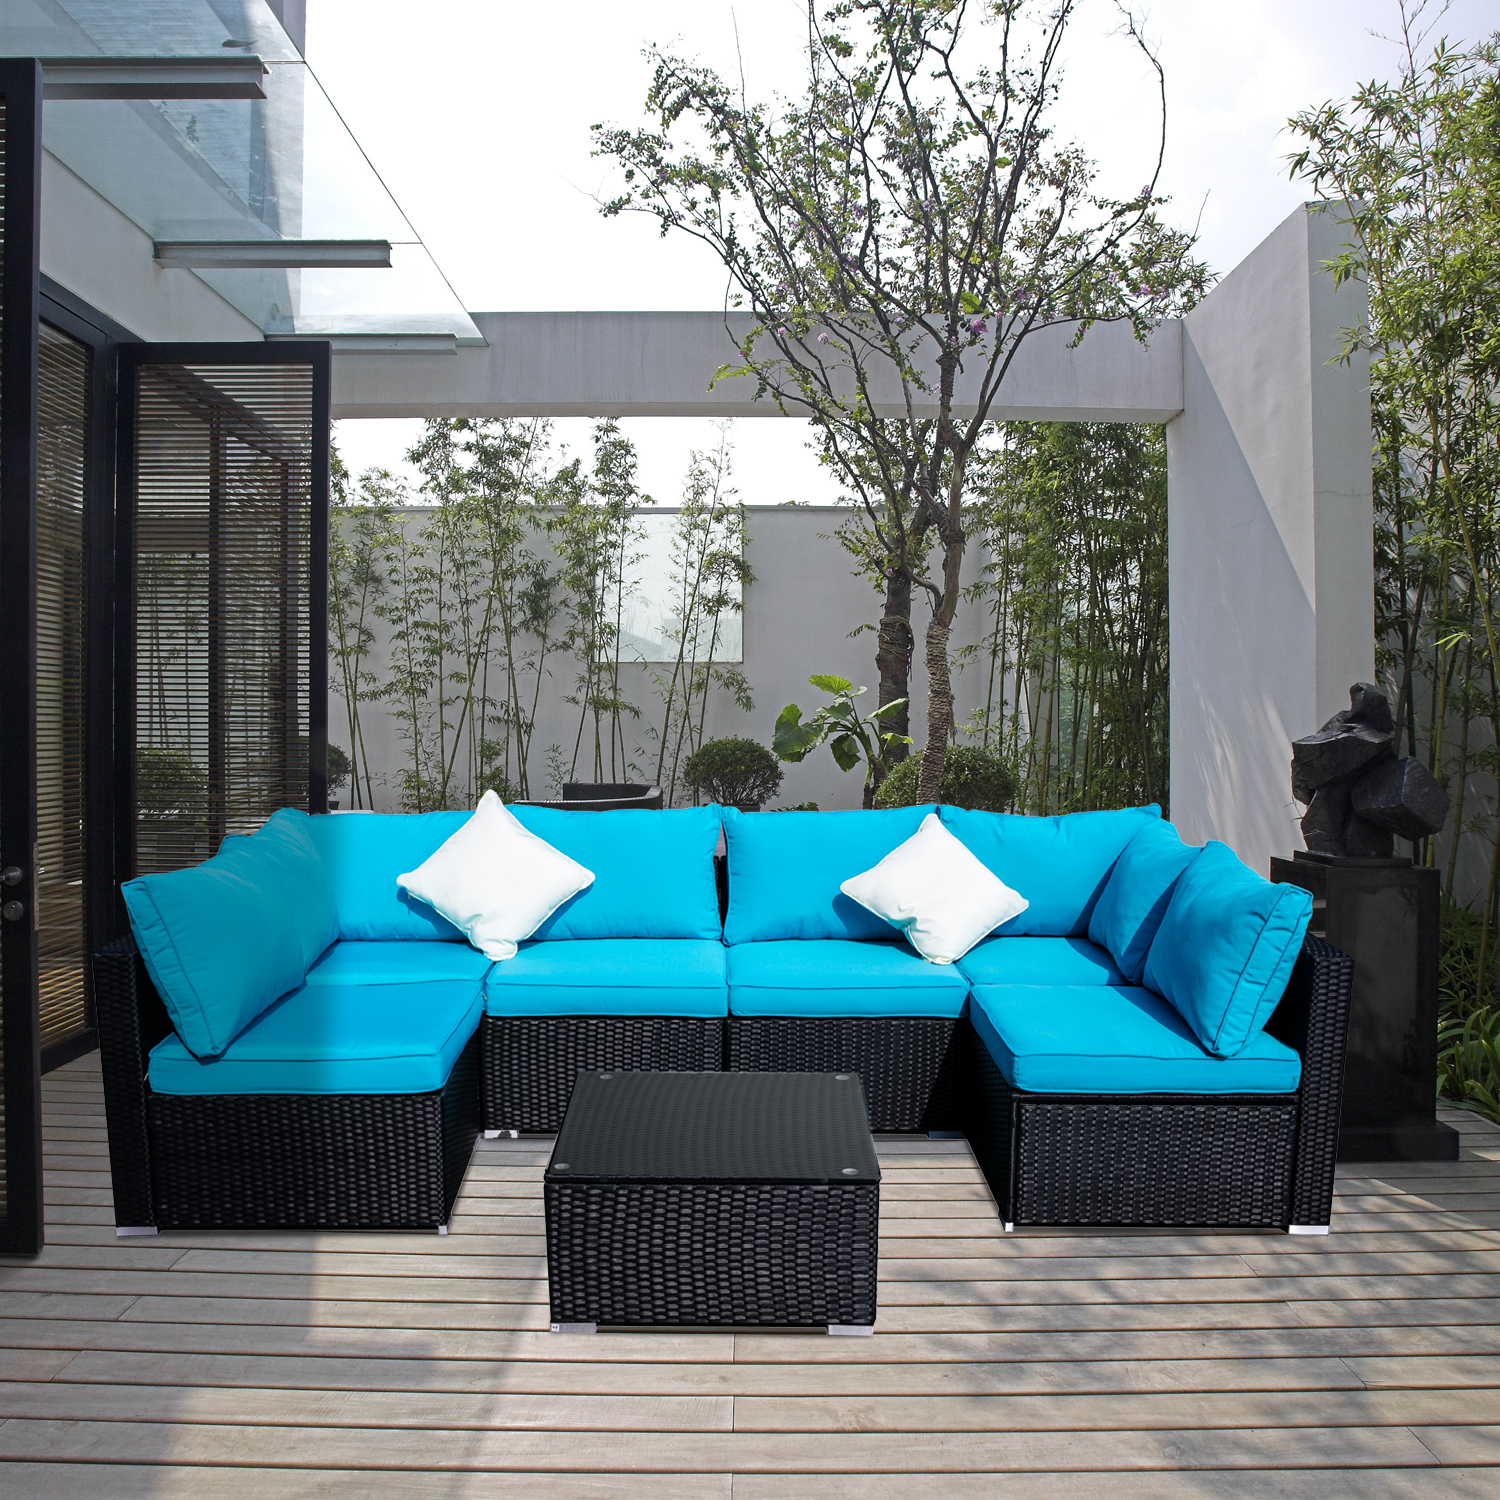 ainfox outdoor patio furniture on clearance 7 pieces pe rattan wicker sectional sofa sets with blue pillows cushions white pillows